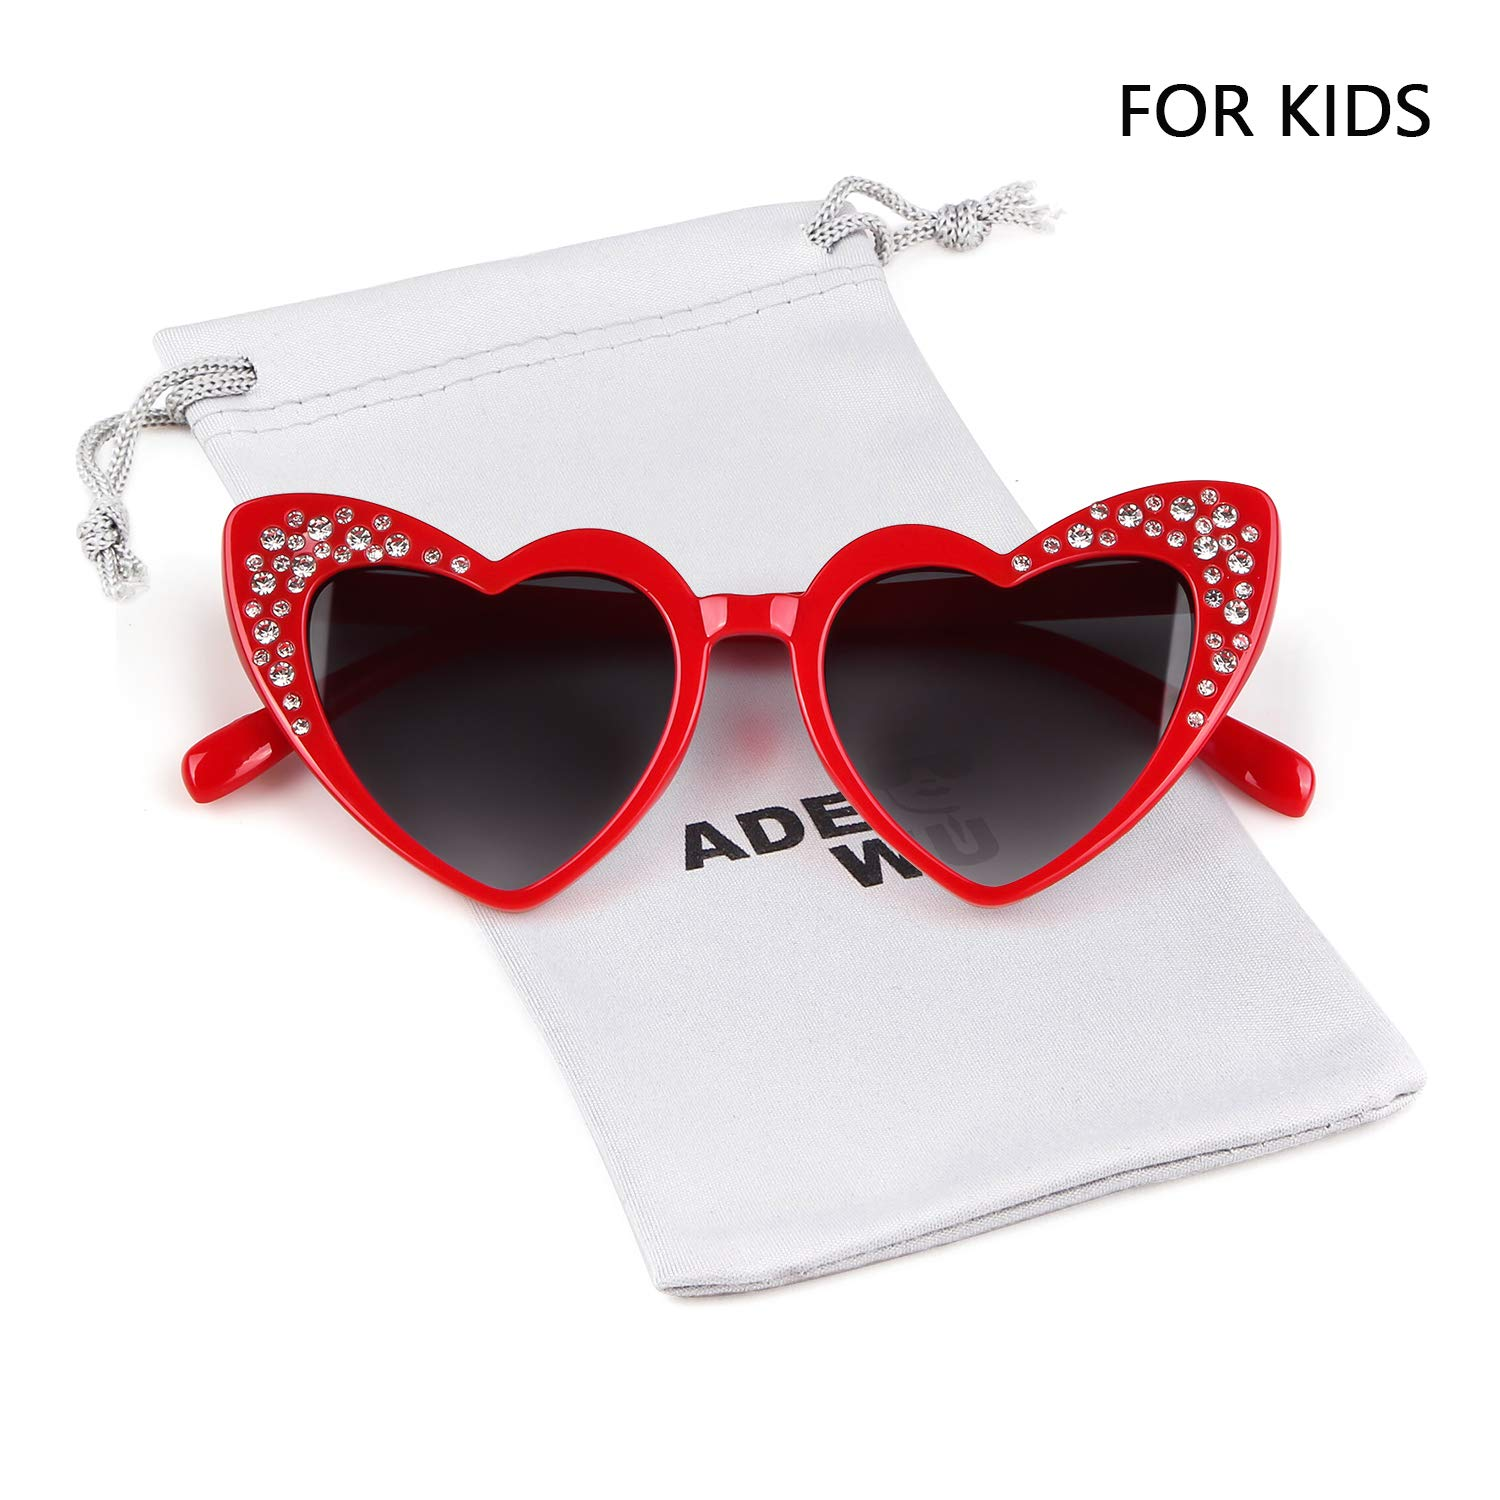 Love Heart Shaped Sunglasses Women Vintage Christmas Giftv For Girls (red, gray) by ADEWU (Image #1)